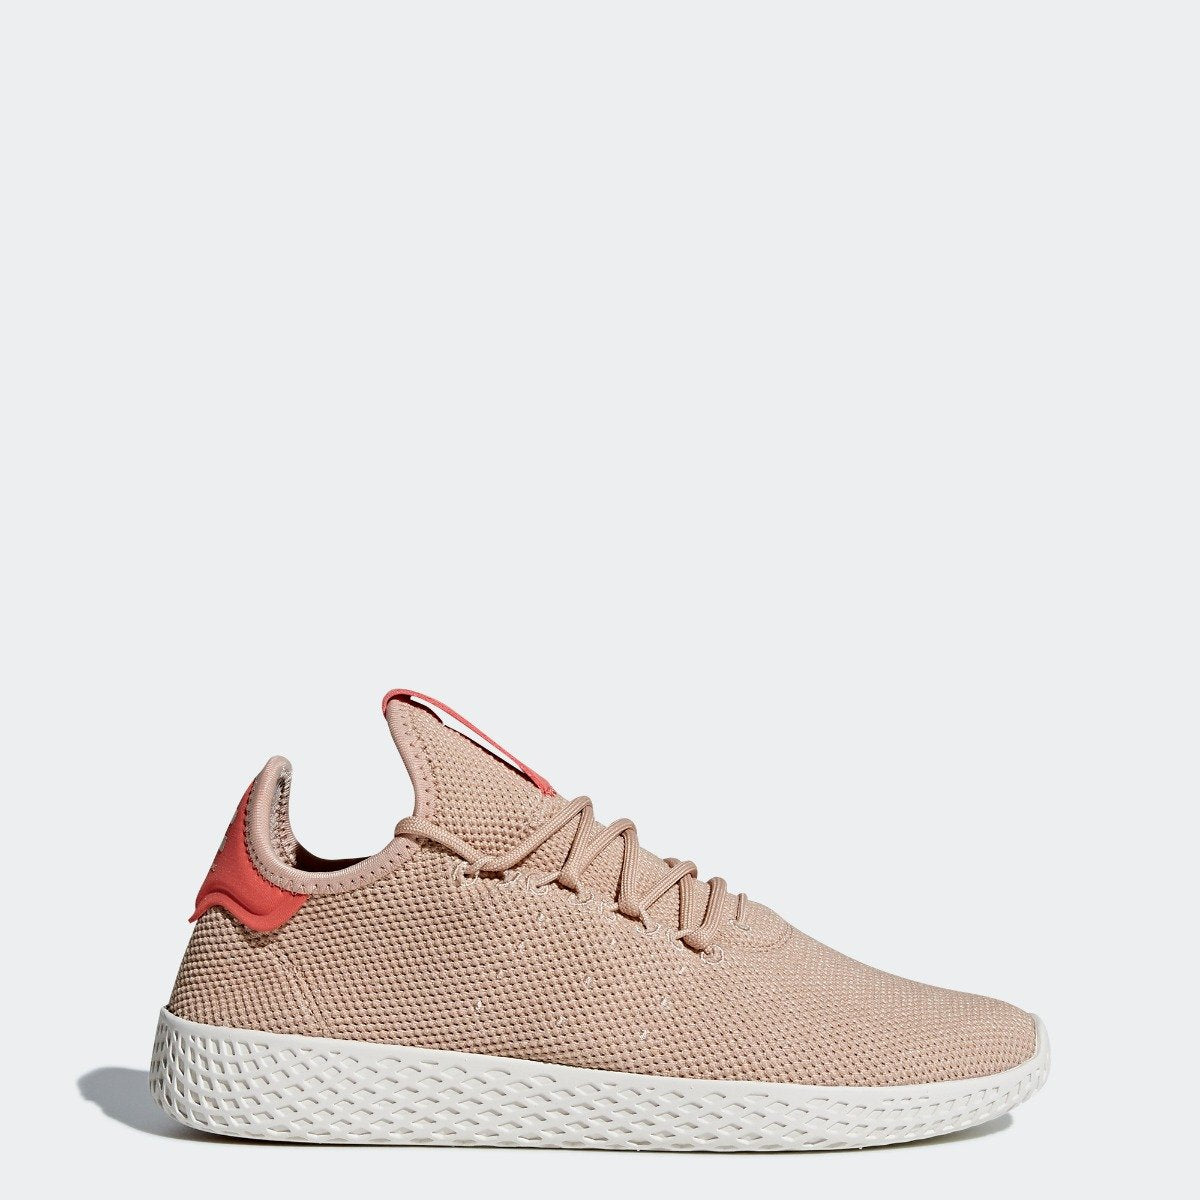 9235b8f4e8419 Men s adidas Originals Pharrell Williams Tennis Hu Shoes Ash Pearl ...